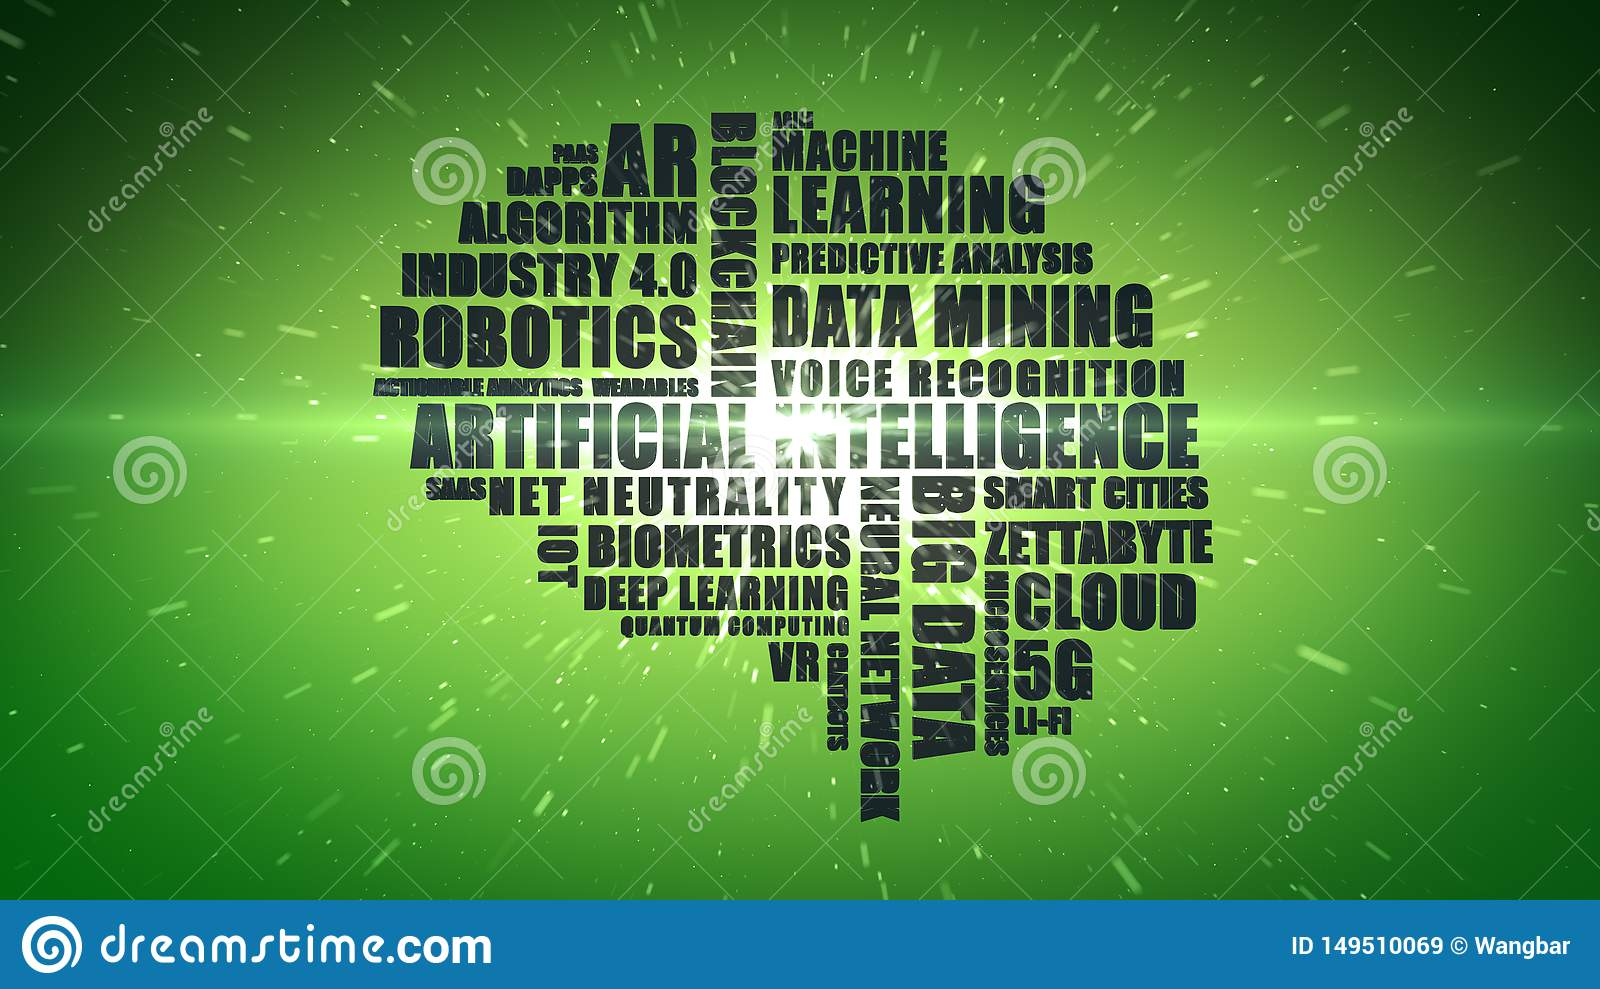 Green technology buzzword wordcloud for Artificial Intelligence